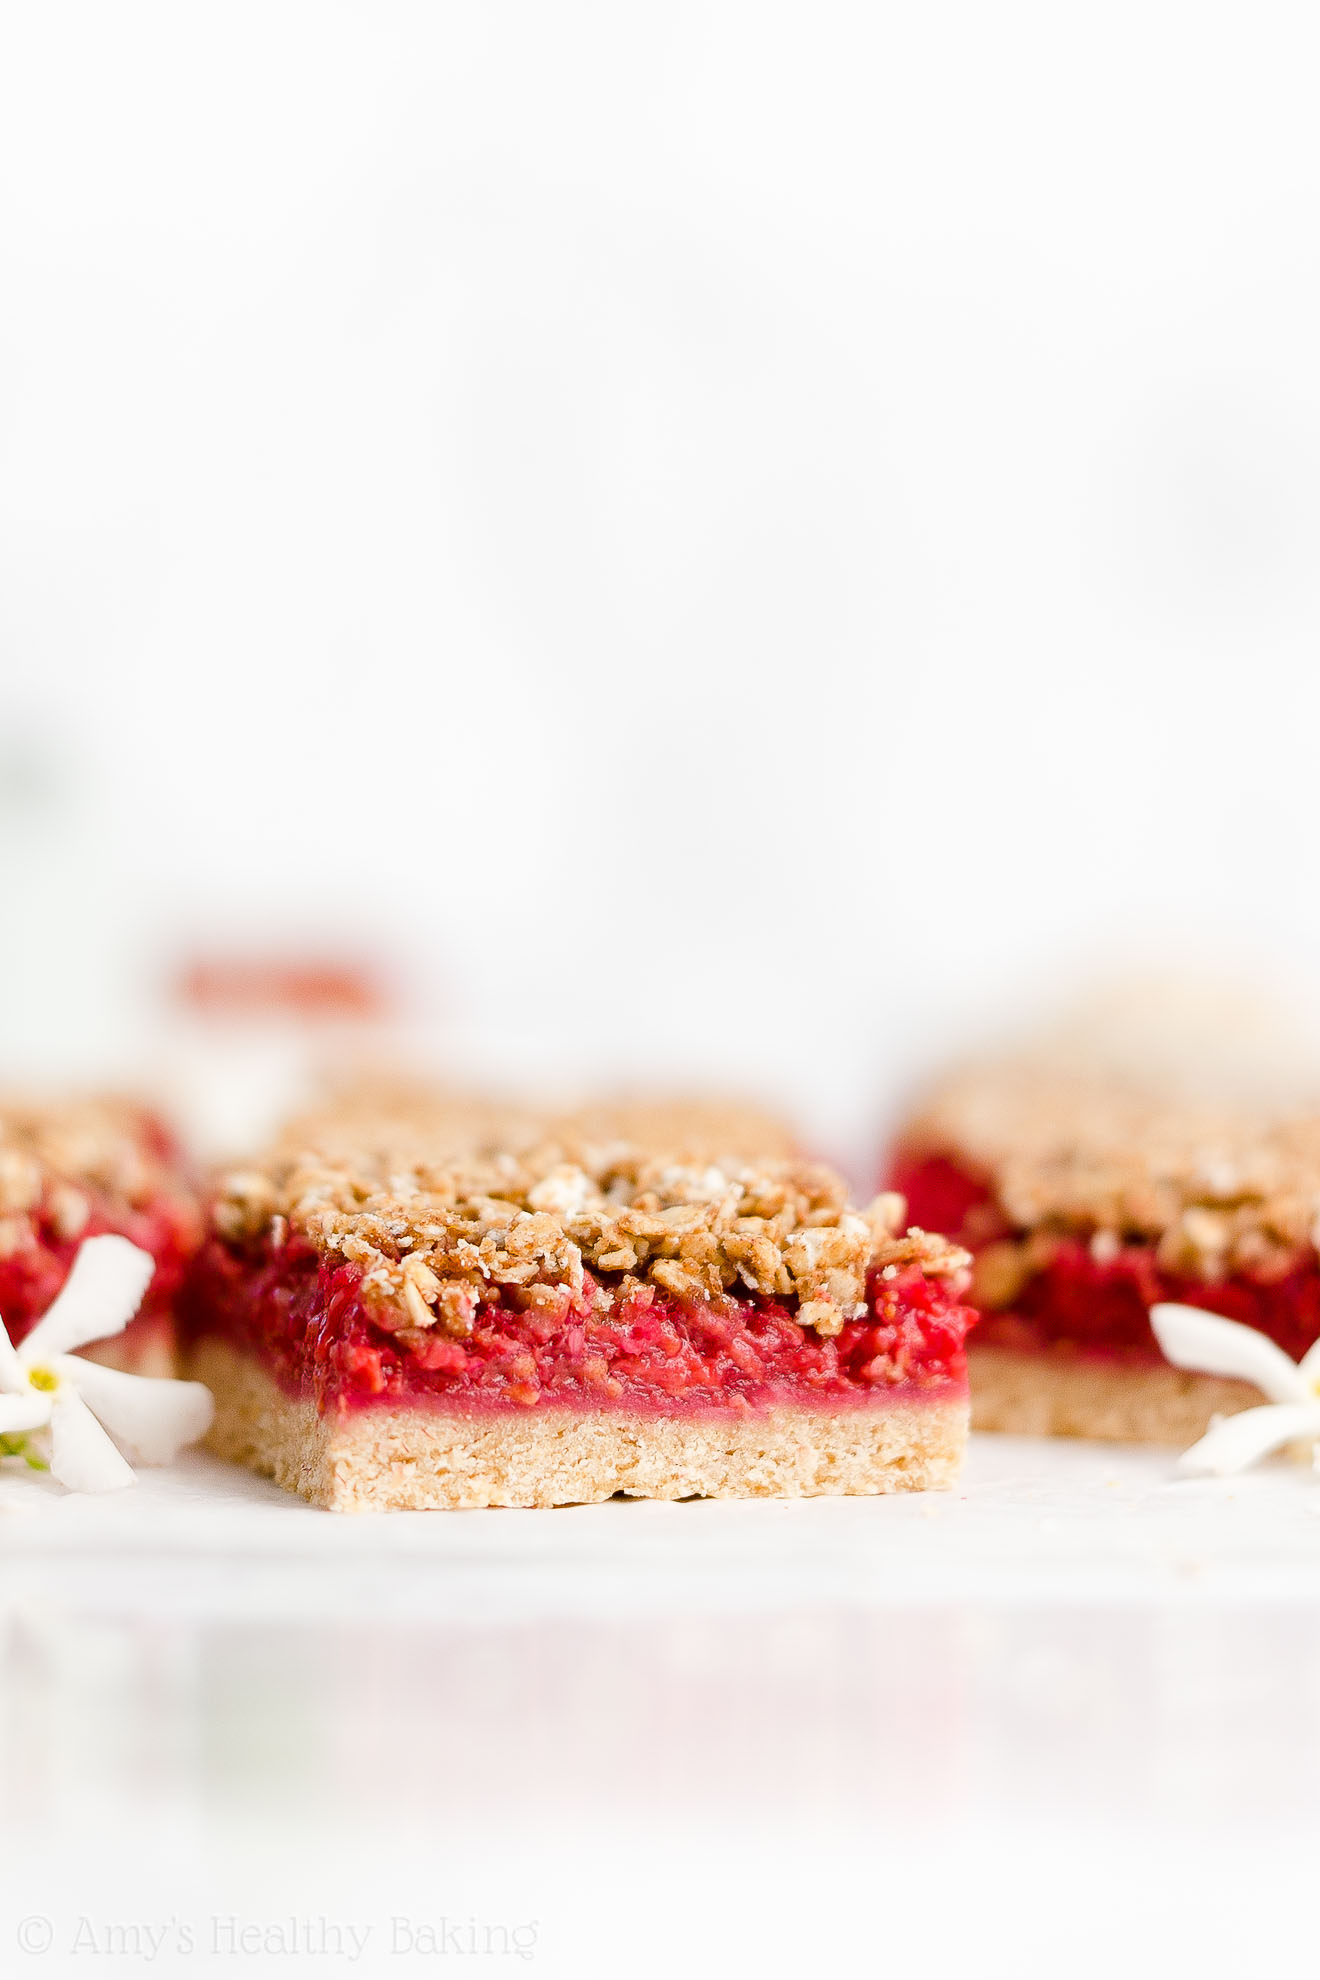 Easy Healthy Dairy Free Gluten Free Low Calorie Fresh Raspberry Crumble Bars